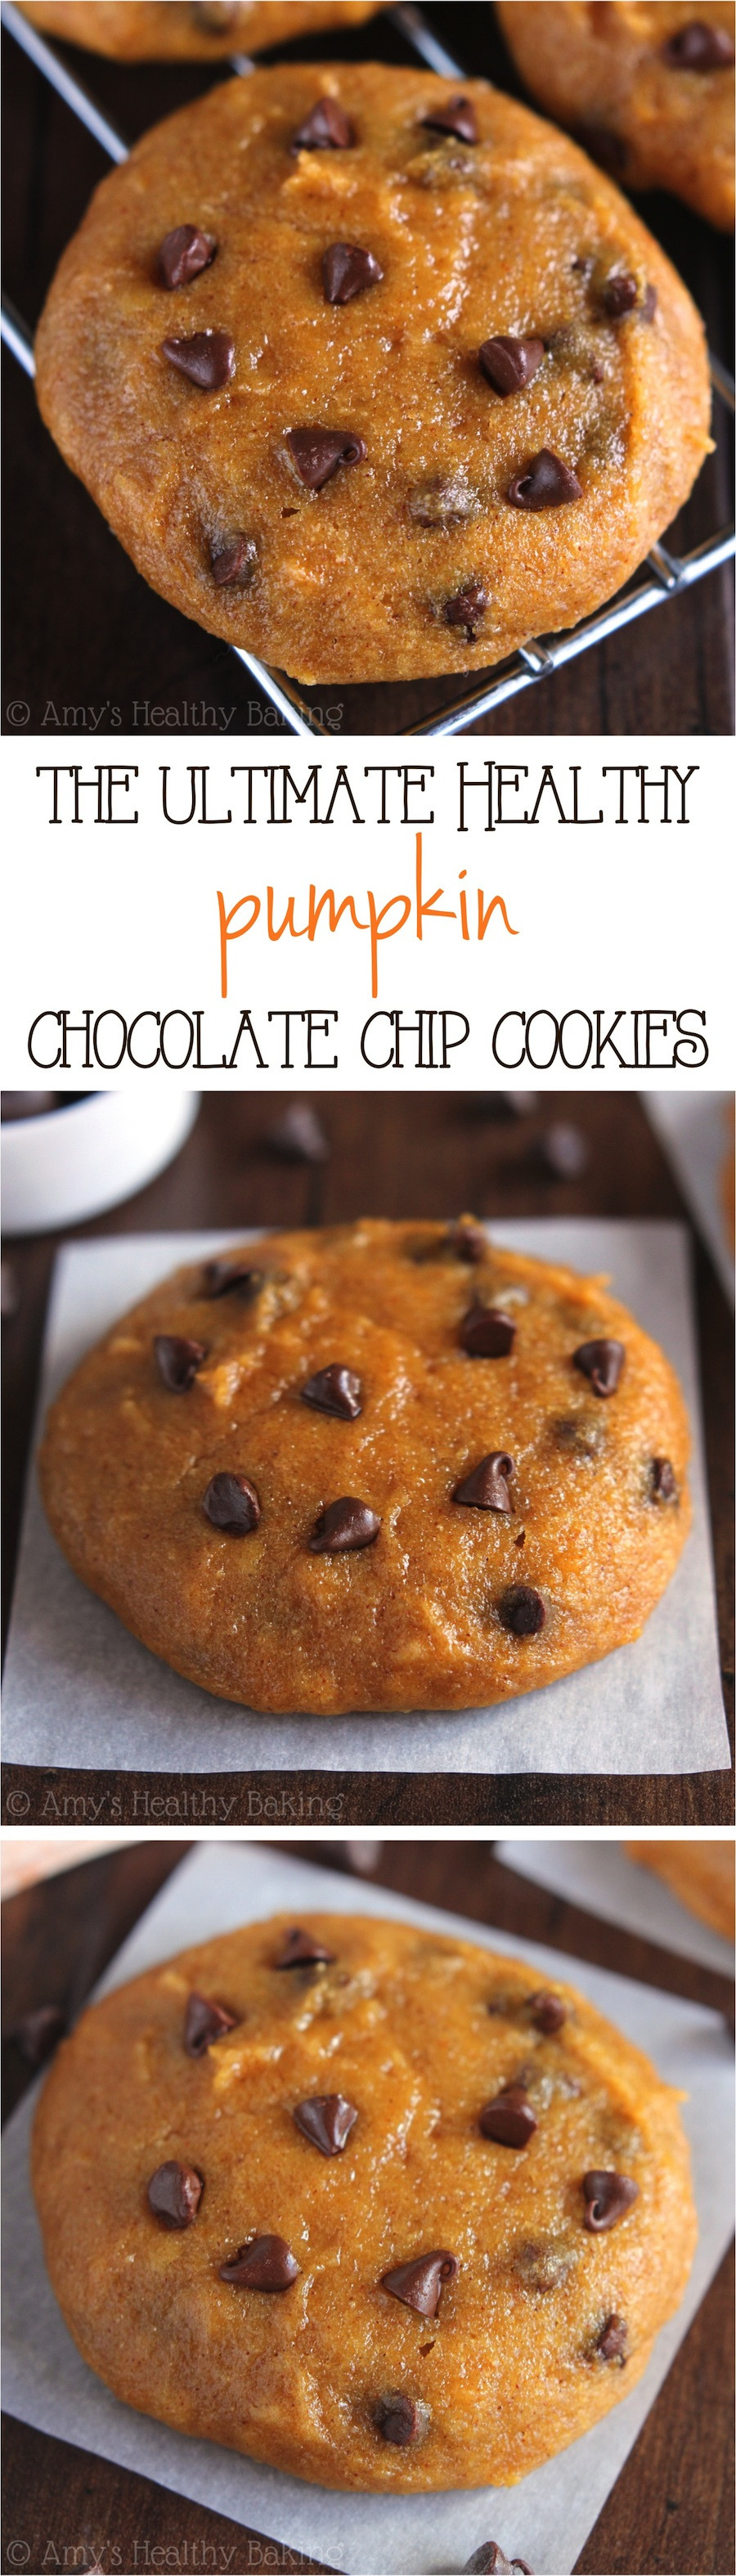 Pumpkin Cookie Recipes Healthy  Ultimate Healthy Soft & Chewy Pumpkin Chocolate Chip